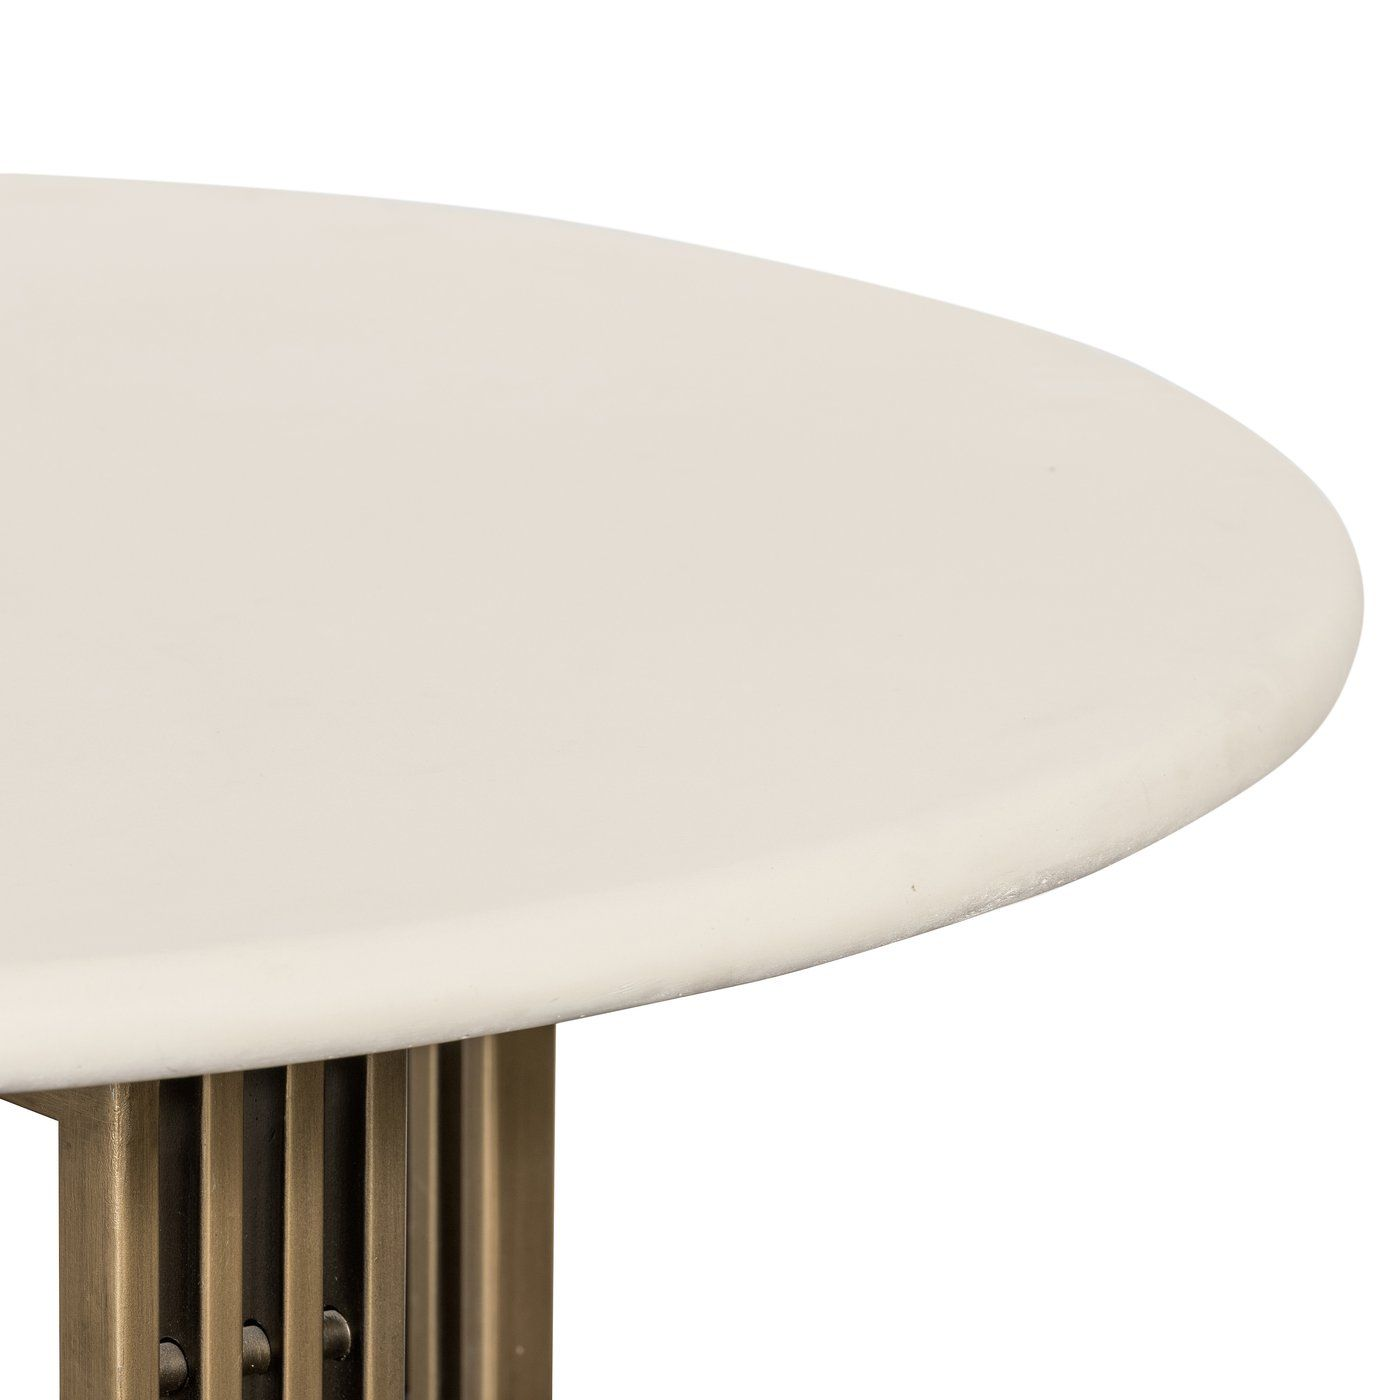 Four Hands Mia Coffee Table Round Coffee Table Coffee Table Concrete Coffee Table [ 1400 x 1400 Pixel ]